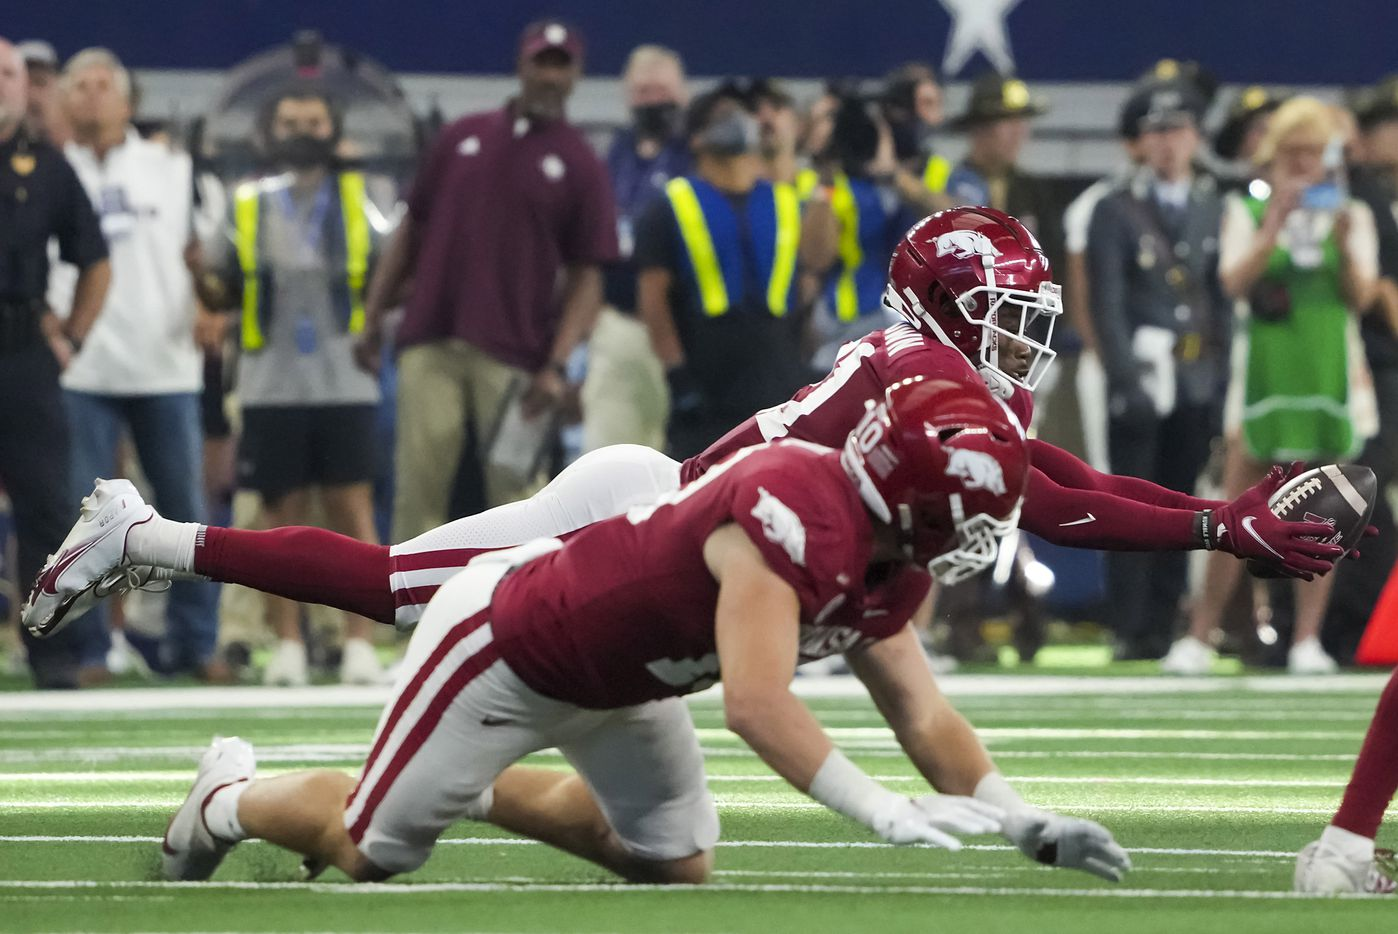 Arkansas defensive back Montaric Brown (21) makes a diving interception during the second half of an NCAA football game against Texas A&M at AT&T Stadium on Saturday, Sept. 25, 2021, in Arlington. Arkansas won the game 20-10.